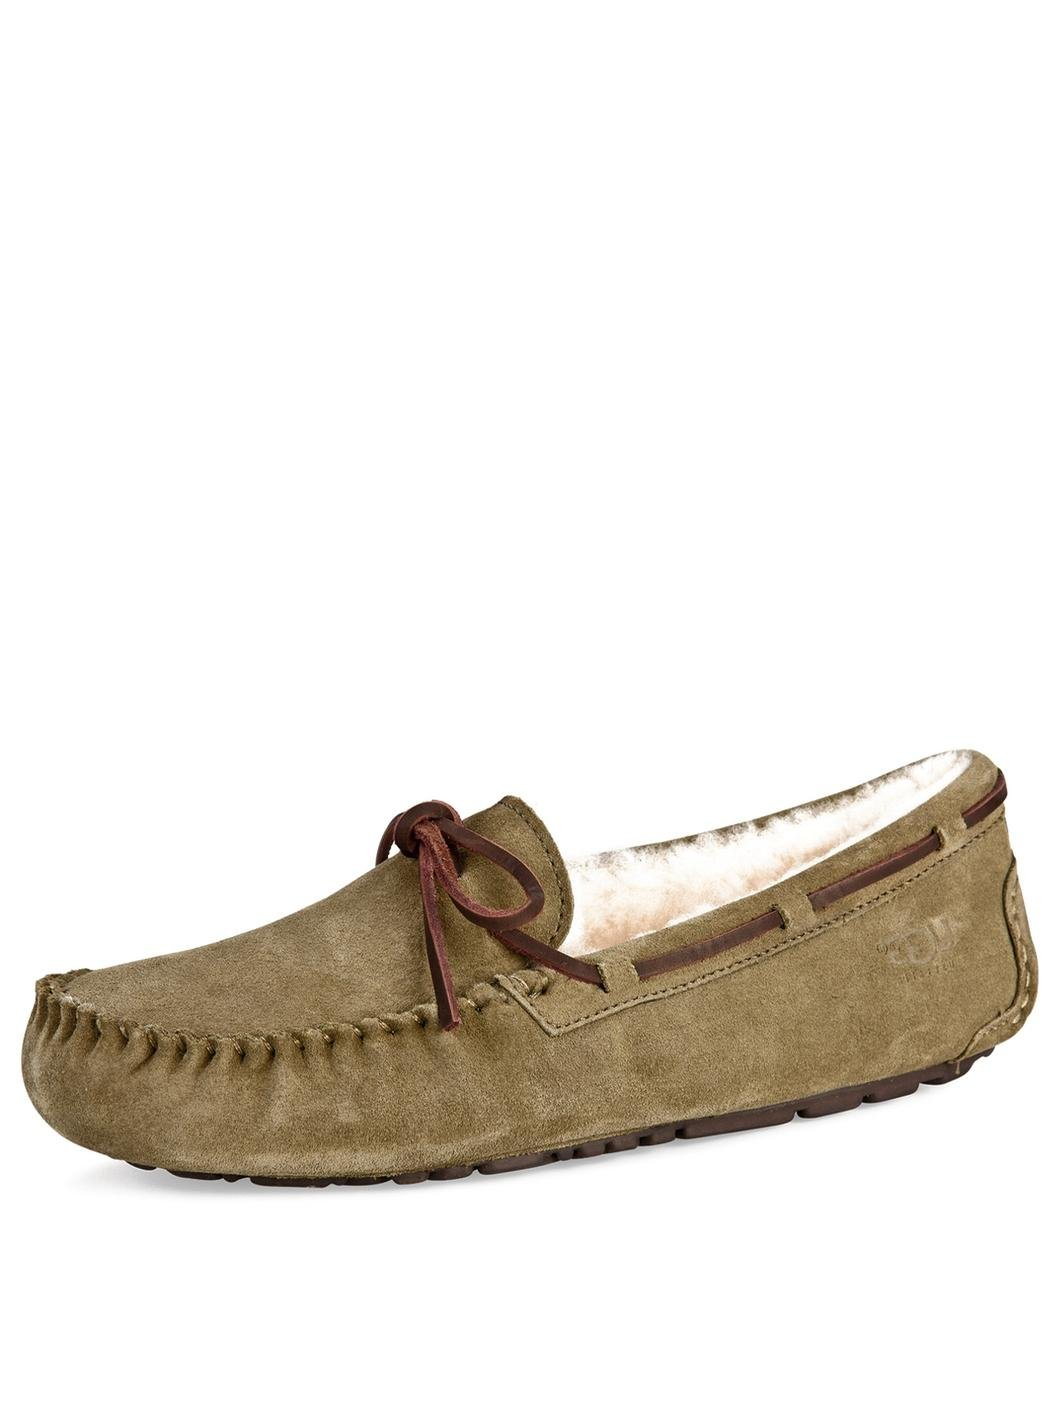 Mens Moccasin Ugg Slippers